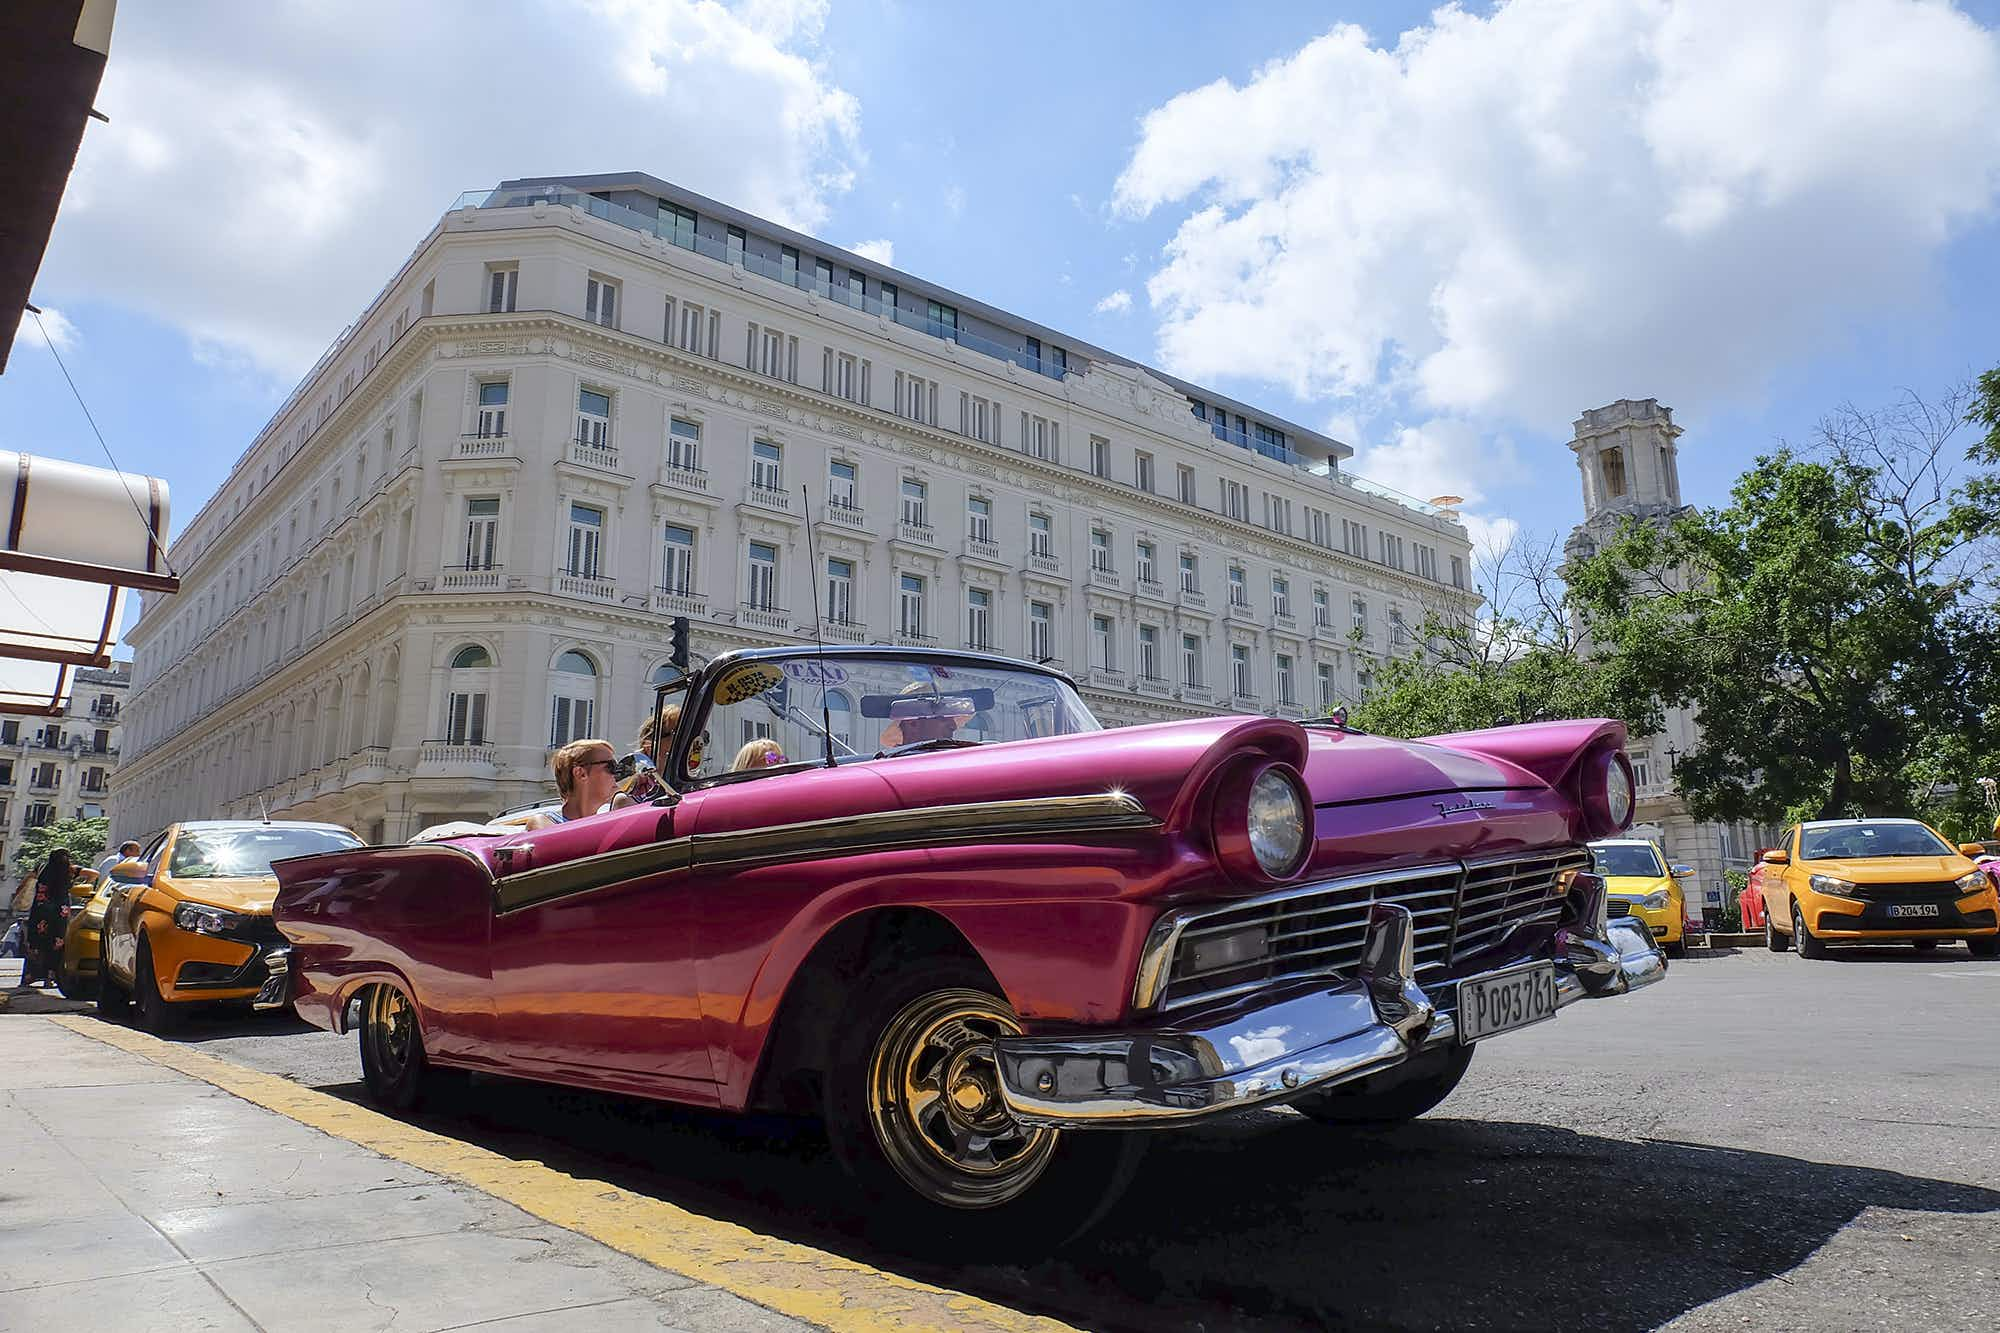 The US State Department upgrades Cuba travel advisory